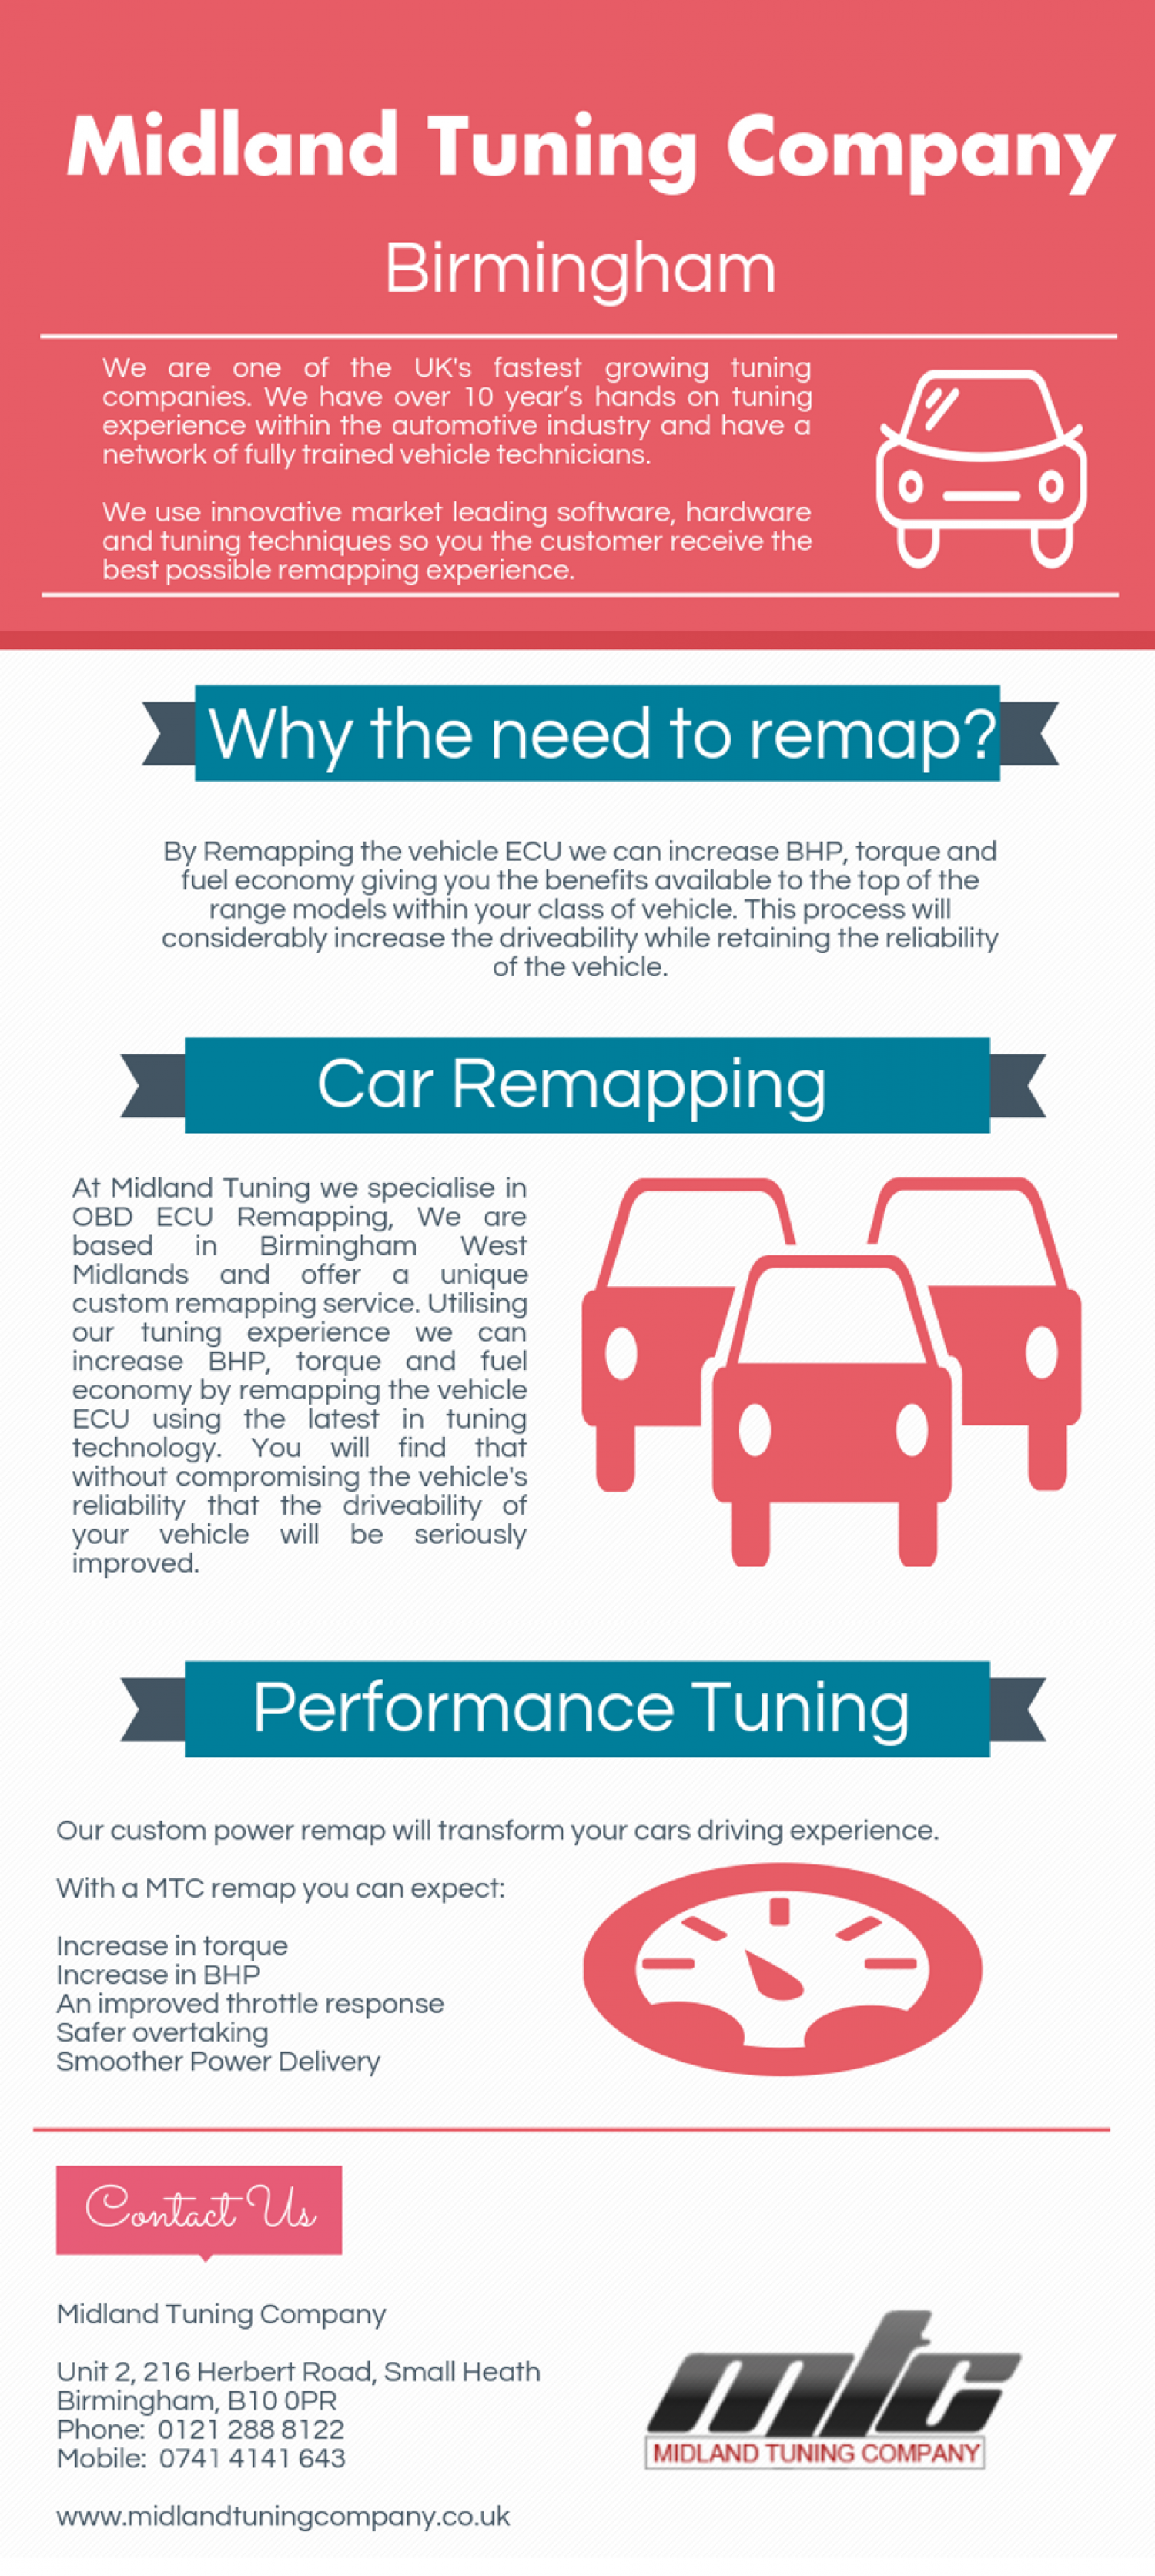 Car Remapping Services At Midland Tuning Company